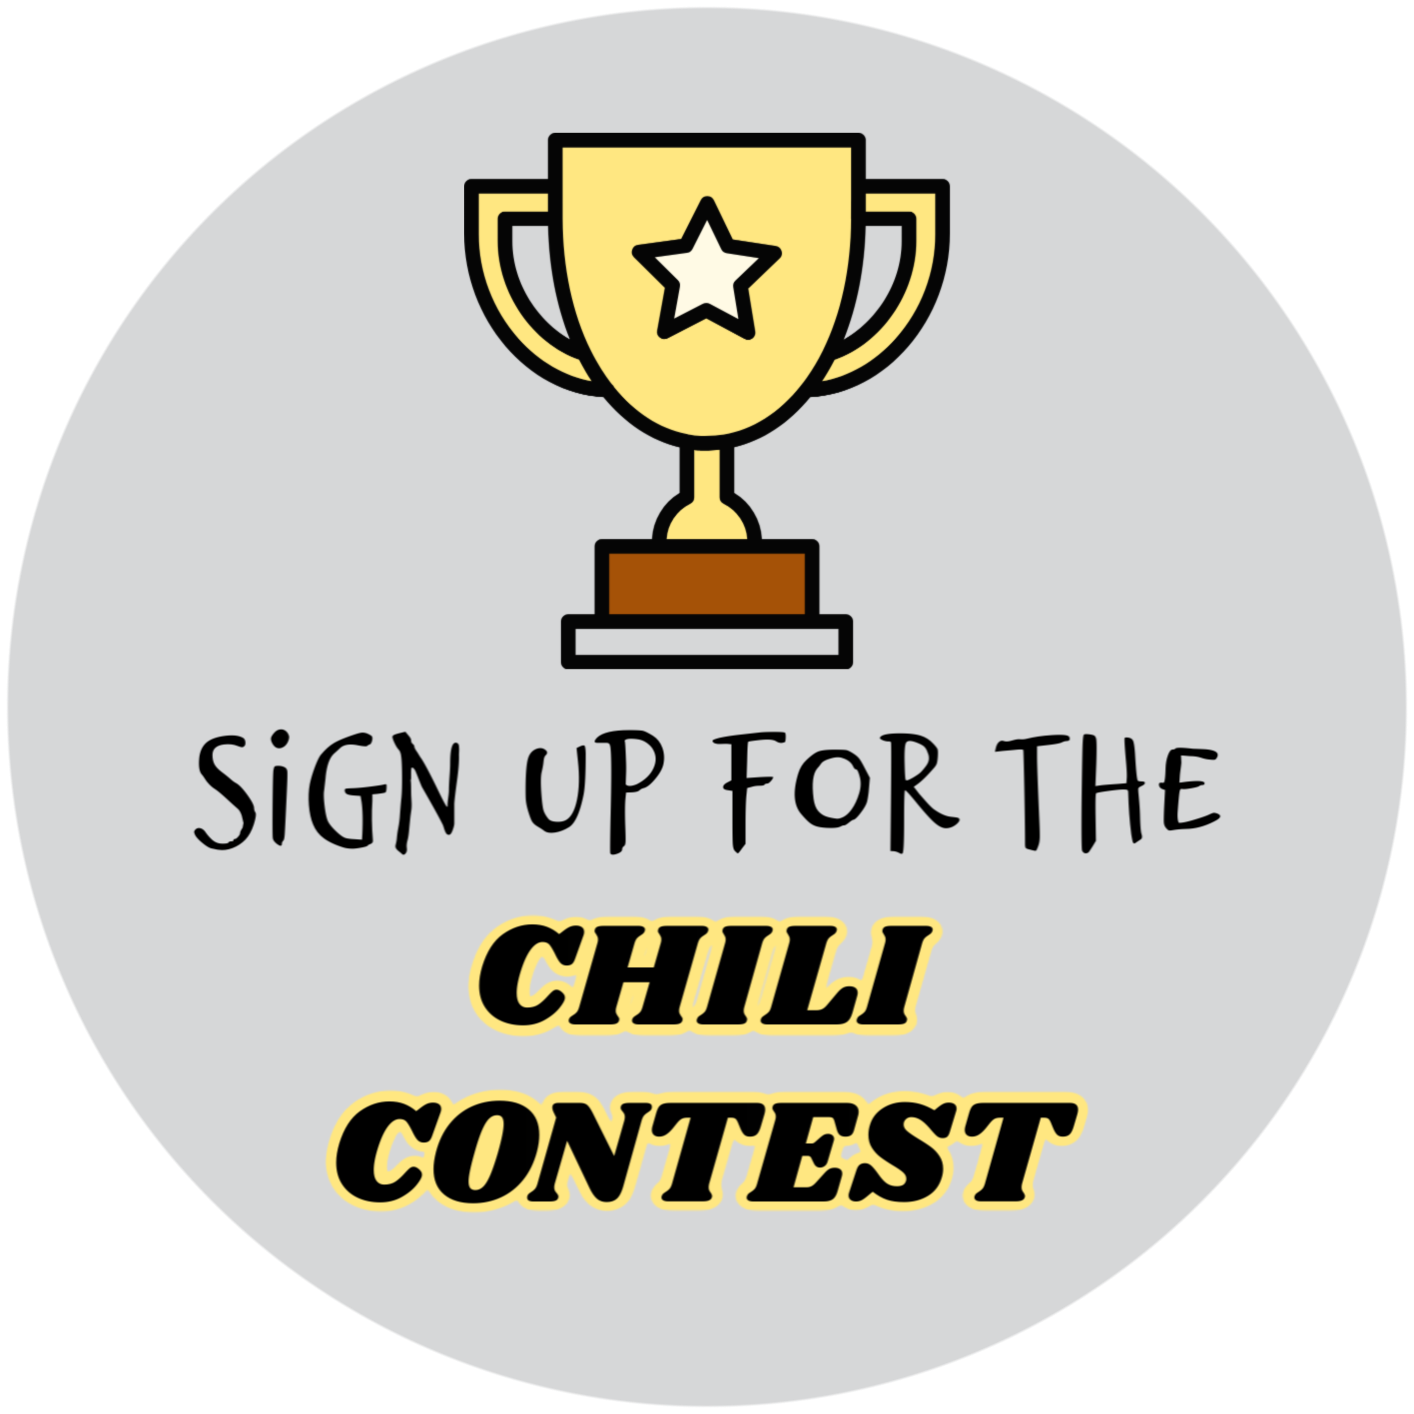 sign up for chili contest.png